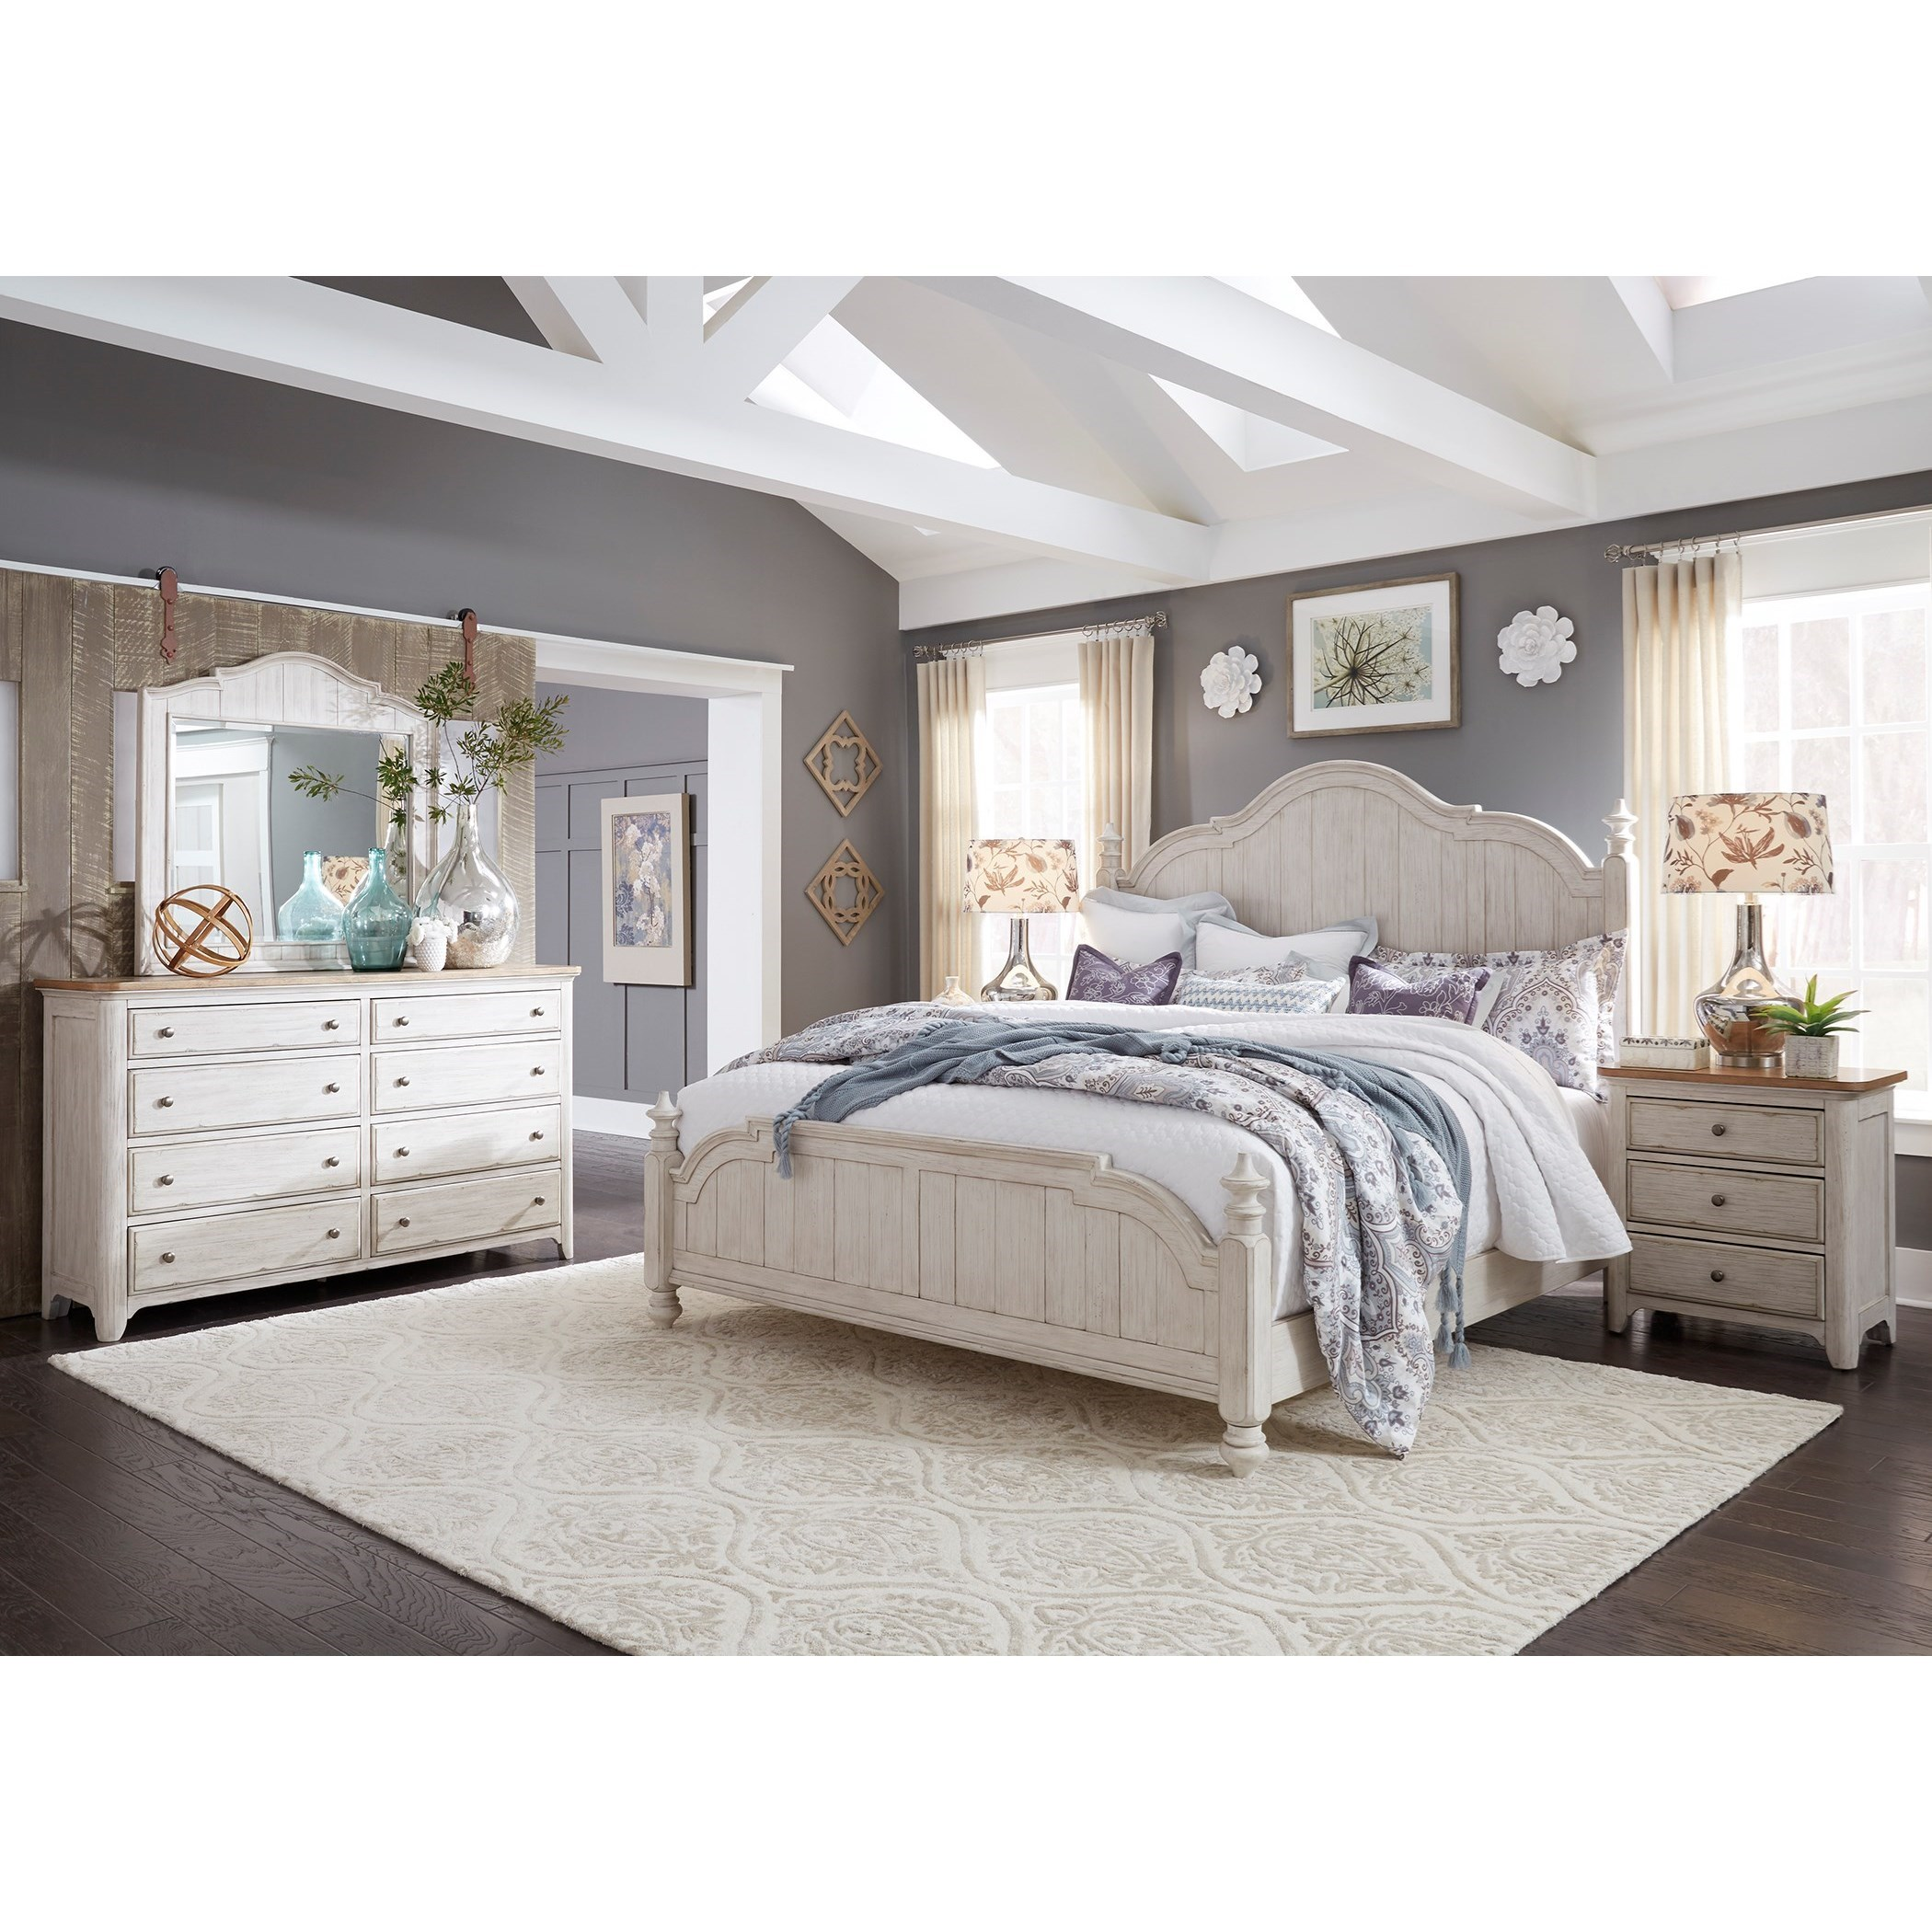 Liberty furniture farmhouse reimagined 652 br qpsdmn queen for Bedroom furniture groups